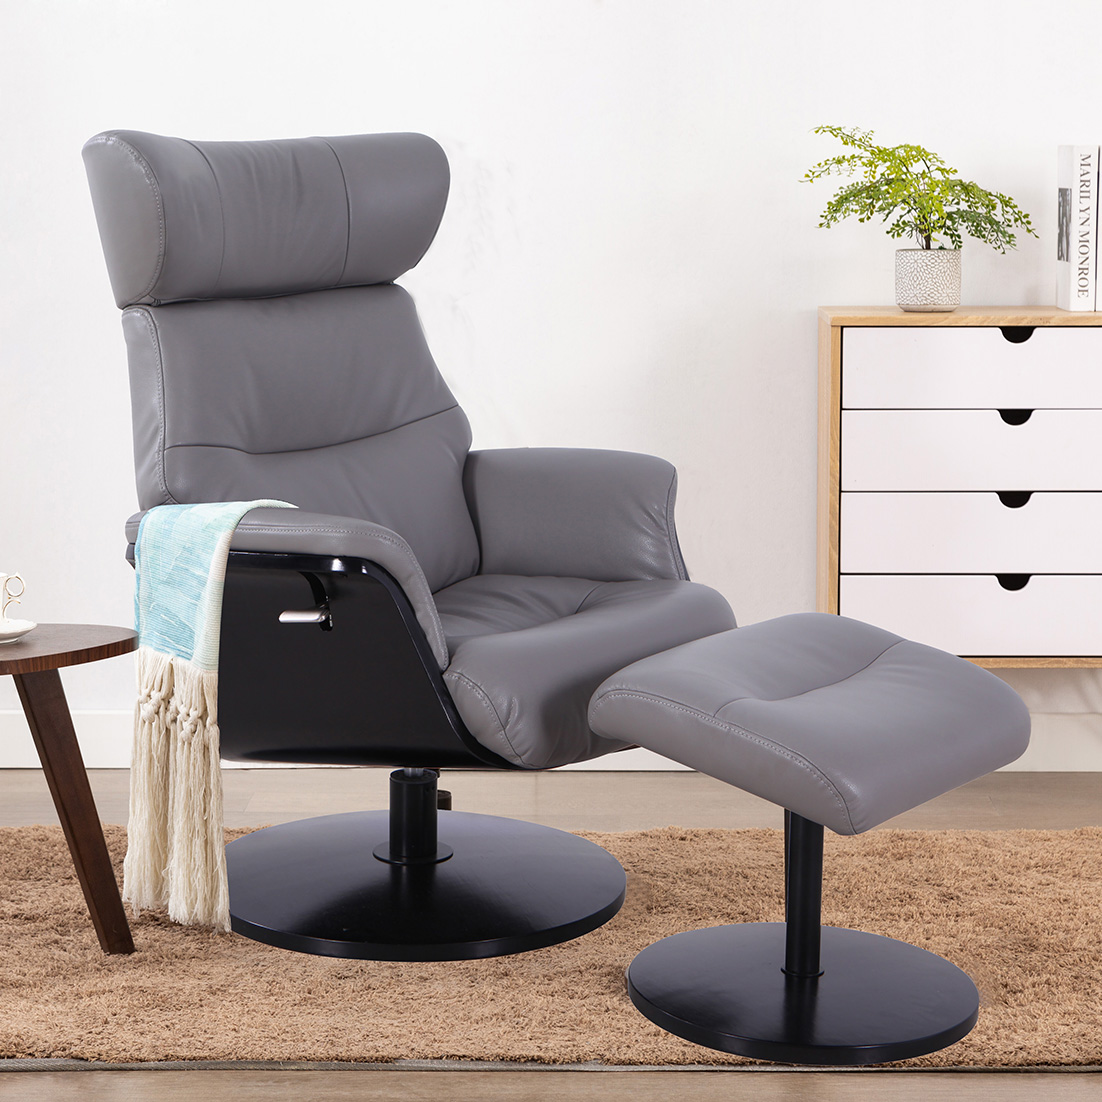 Stockholm Leather Recliner & Ottoman - Steel